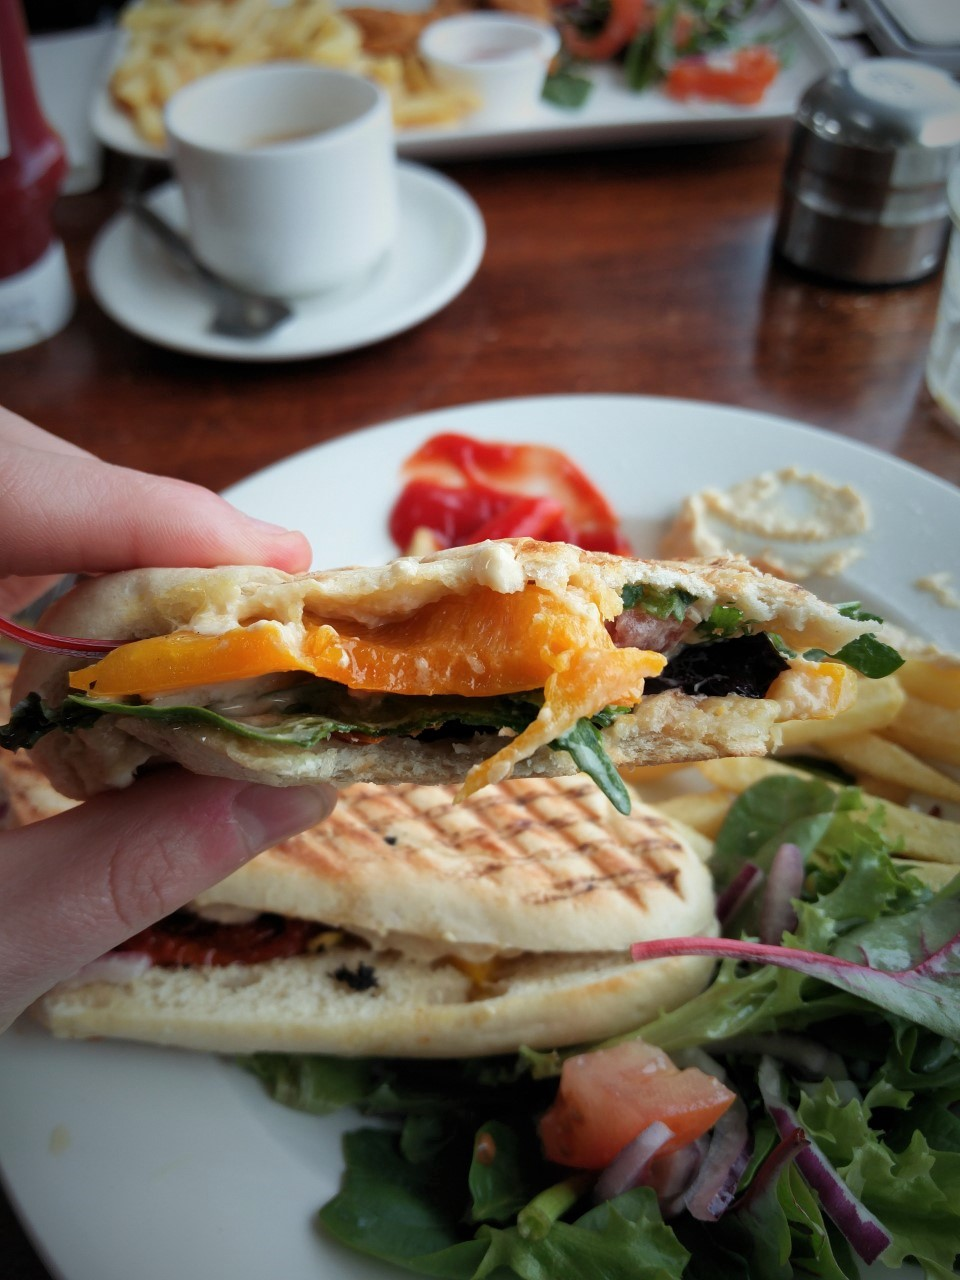 Here I asked for a salad panini (yes I got a weird look from the server) and it came with sweetcorn, peppers, red onion and sun dried tomatoes. I added some handbag hummus and took it up a notch! This was so good! Photo taken in Kilkee, Co. Clare (Ireladn).